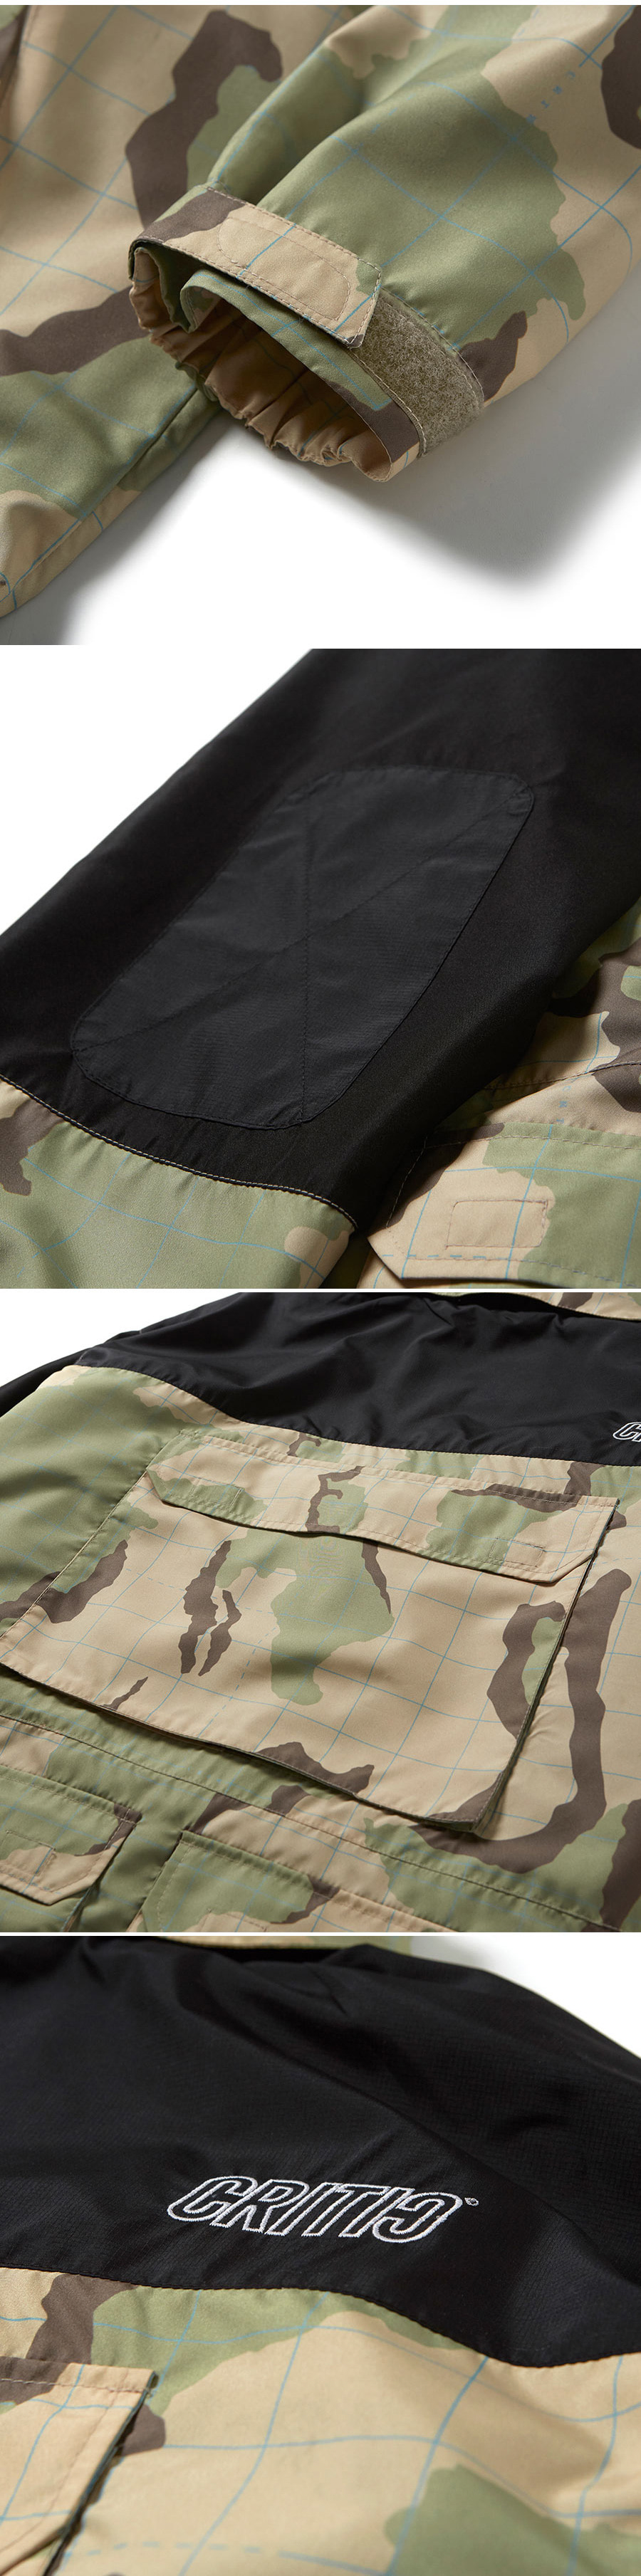 크리틱(CRITIC) UTILITY JACKET(CAMO)_CTOGPJK02UK1